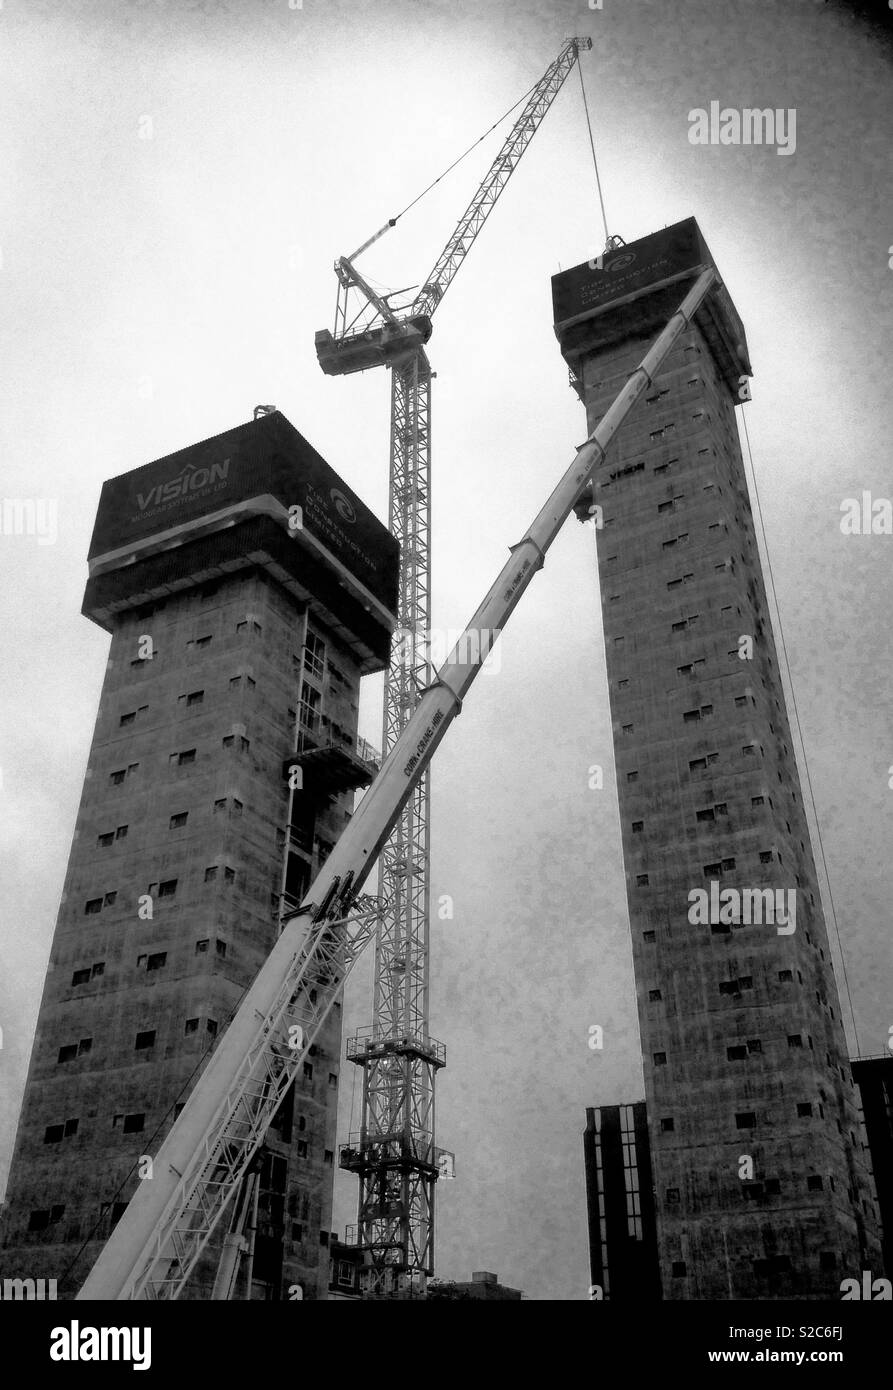 Urban high rise construction site - Stock Image